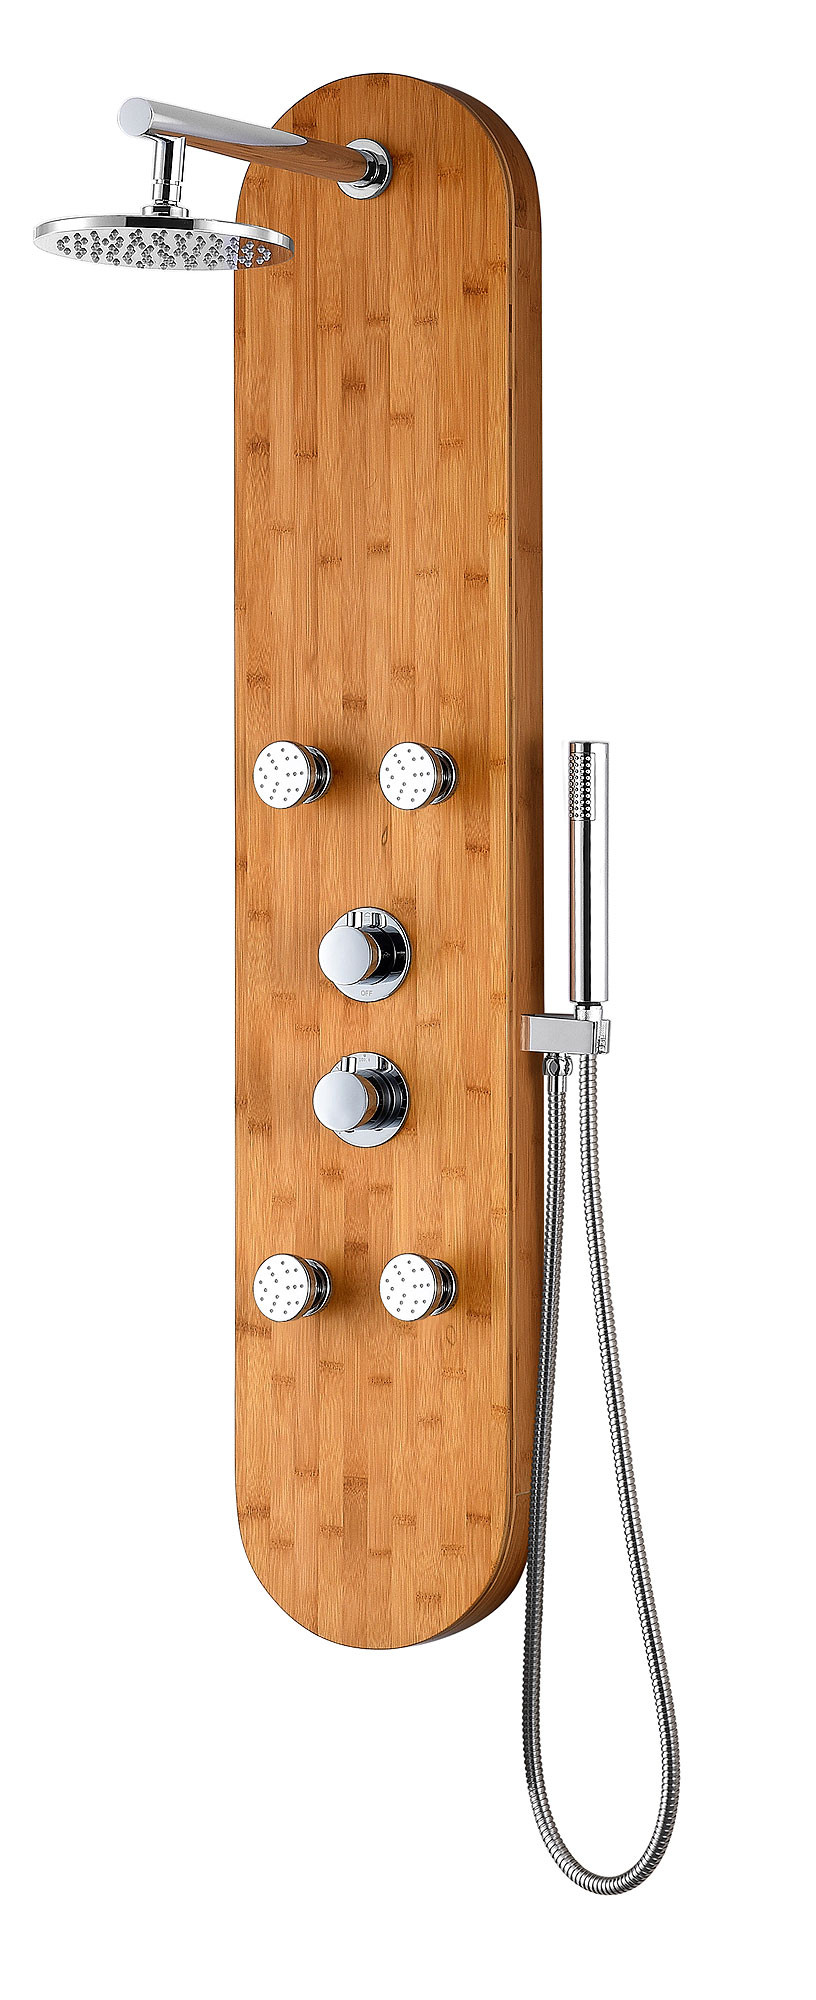 ANZZI SP-AZ061 Crane Shower Panel With Two Knob Handles In Natural Bamboo